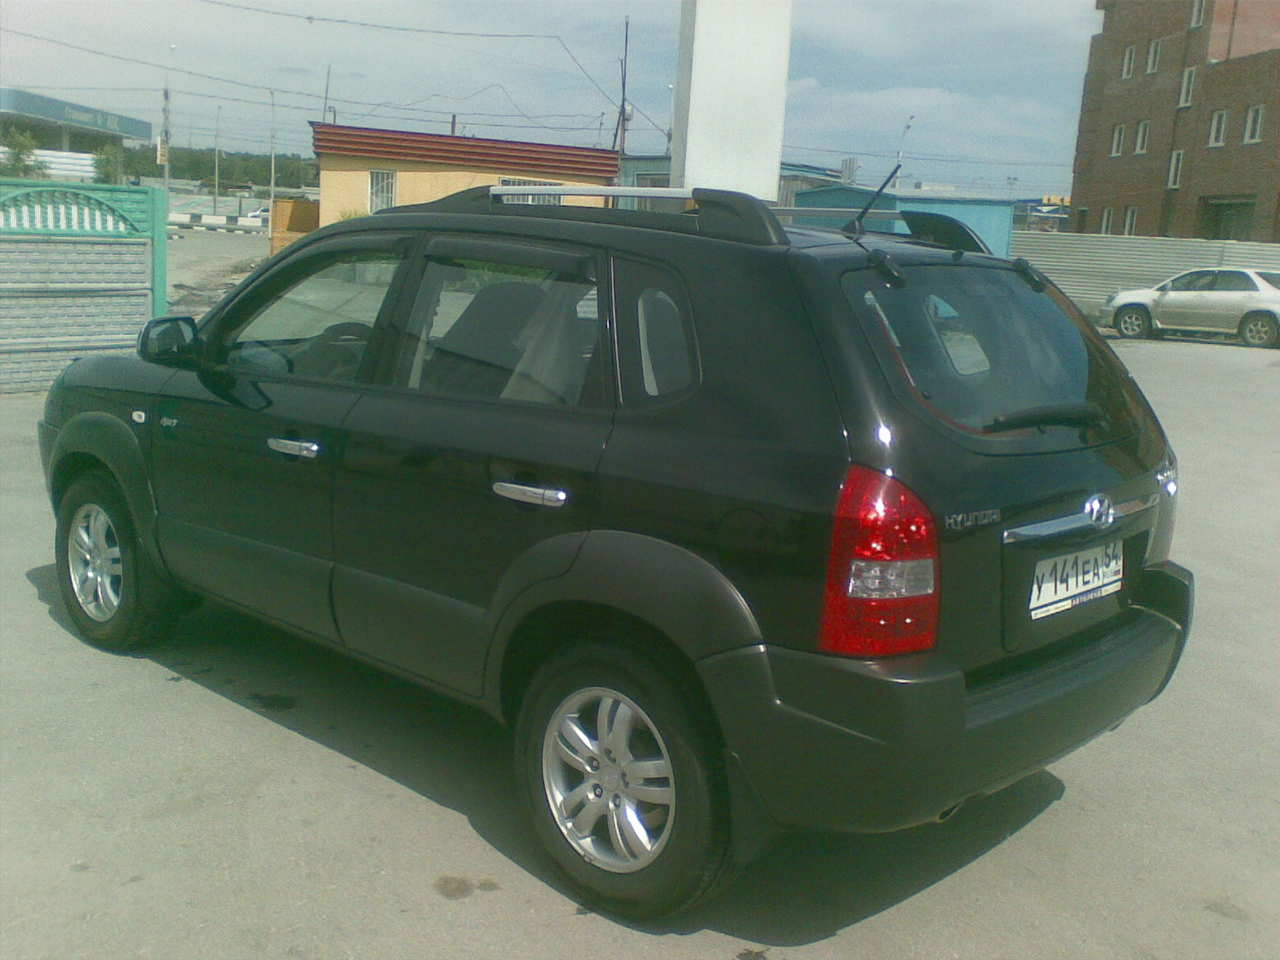 used 2006 hyundai tucson photos 2700cc gasoline automatic for sale. Black Bedroom Furniture Sets. Home Design Ideas